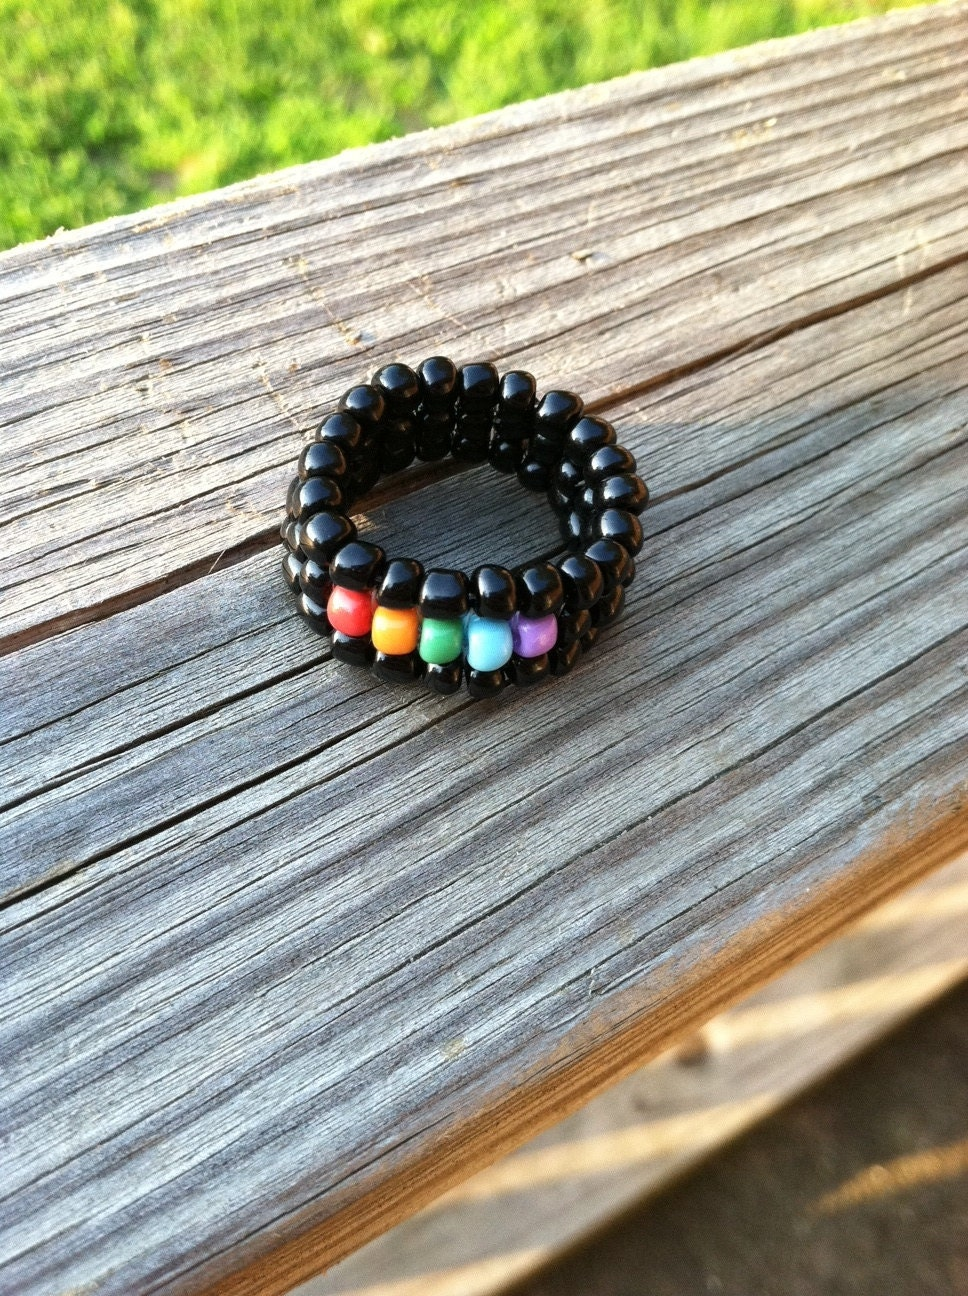 Rainbow/gay pride square stitch ring. From ImperfectArts